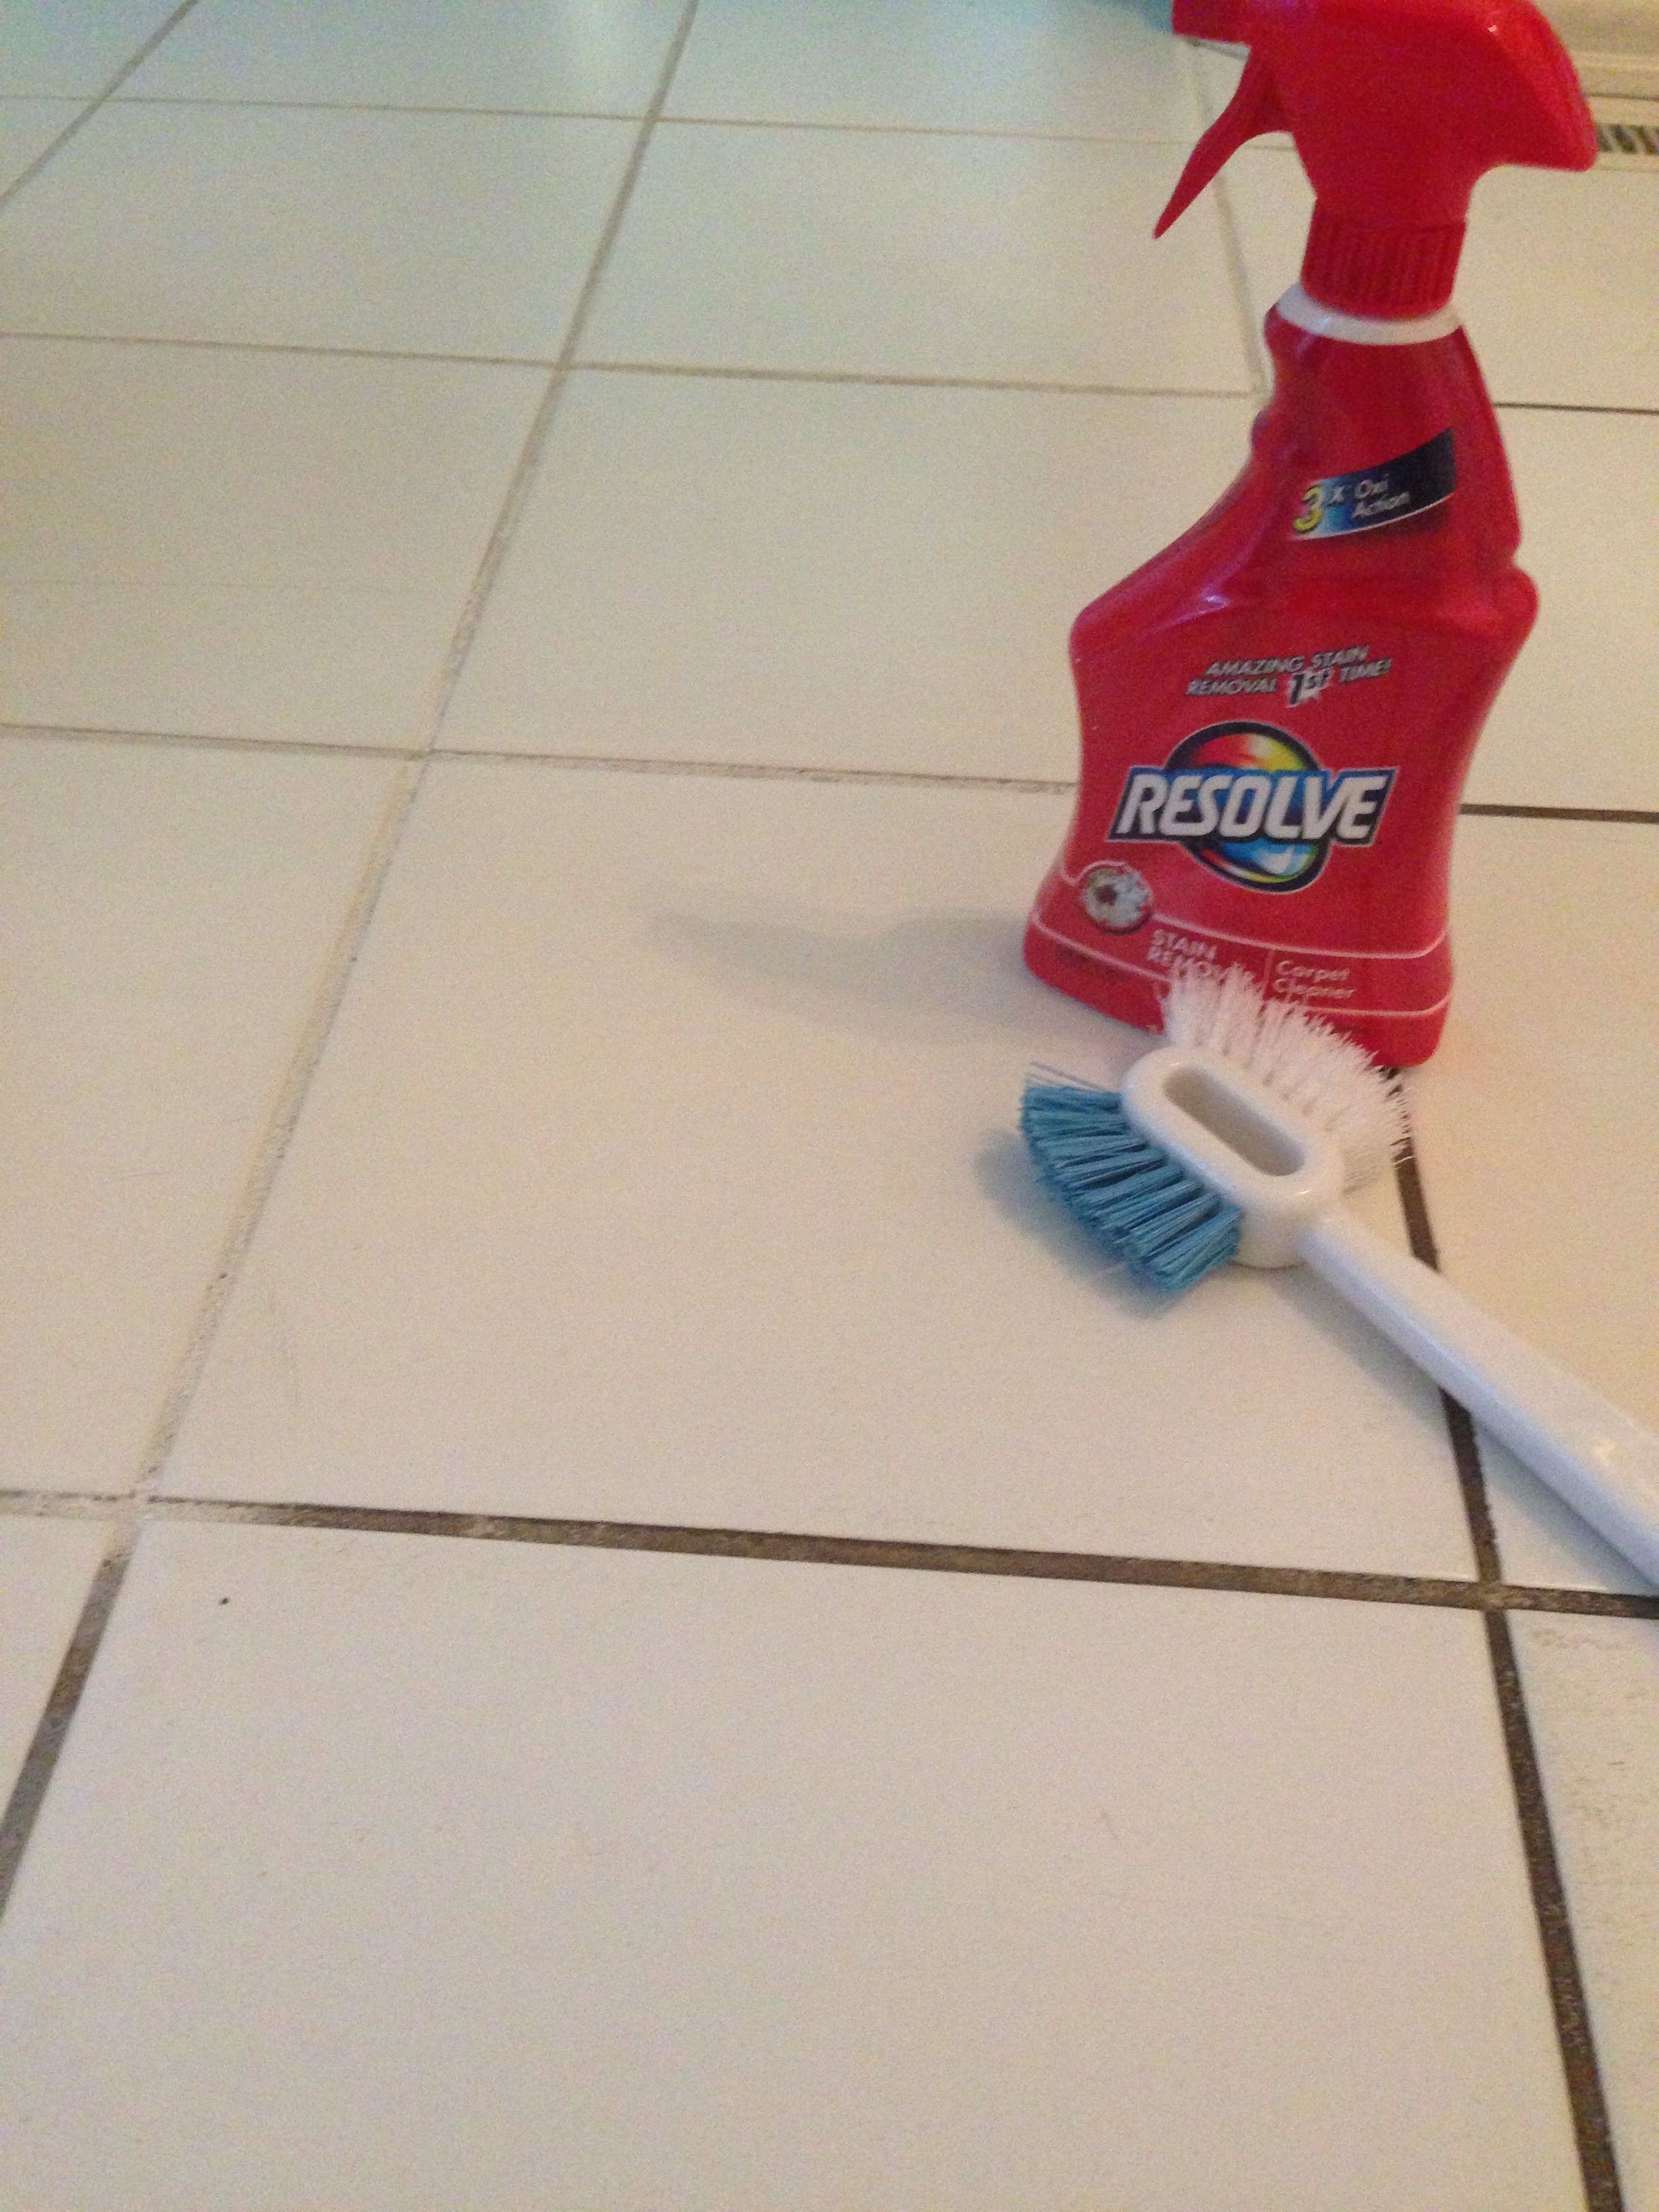 Resolve carpet cleaner to clean grout hydrogen peroxide grout carpet cleaners dailygadgetfo Images